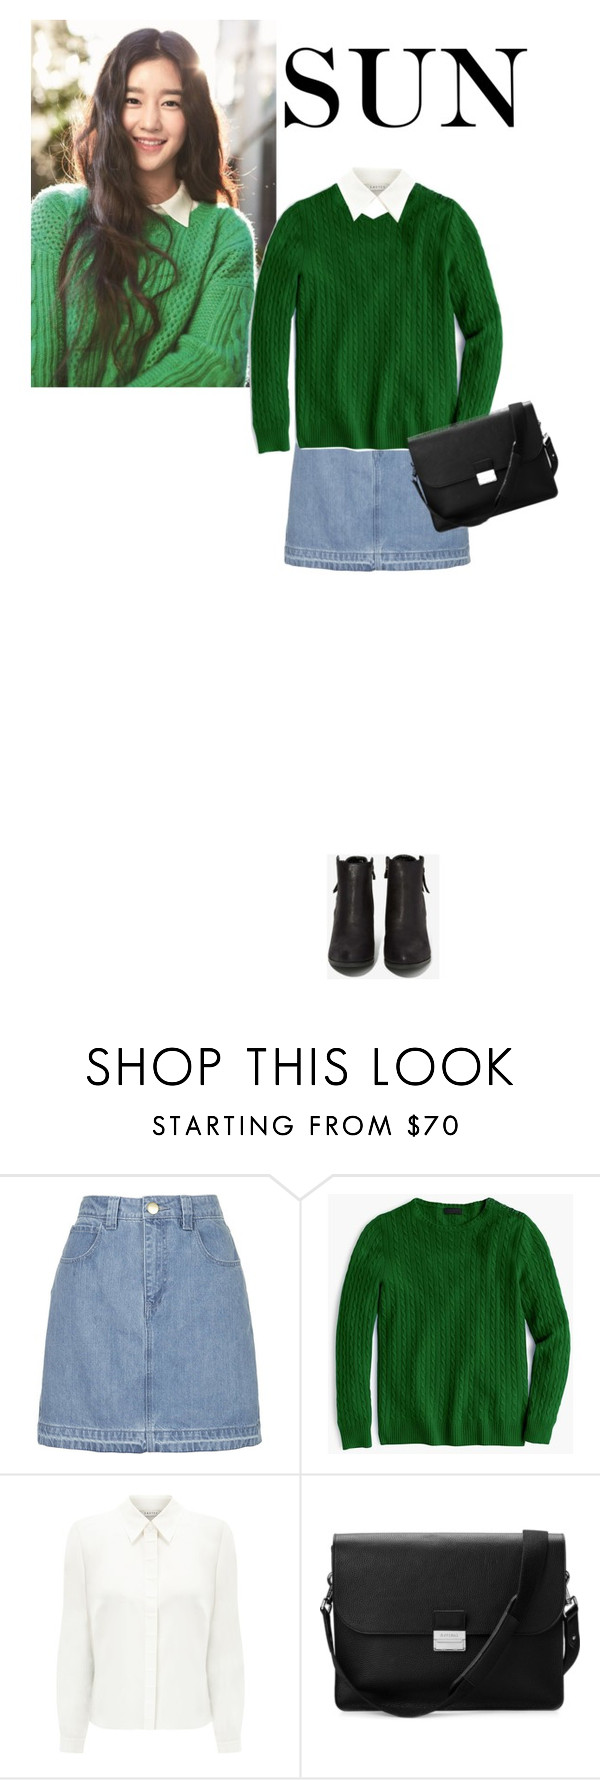 """""""Untitled #229"""" by lerazu ❤ liked on Polyvore featuring Topshop, J.Crew, Eastex, Aspinal of London and N.Y.L.A."""